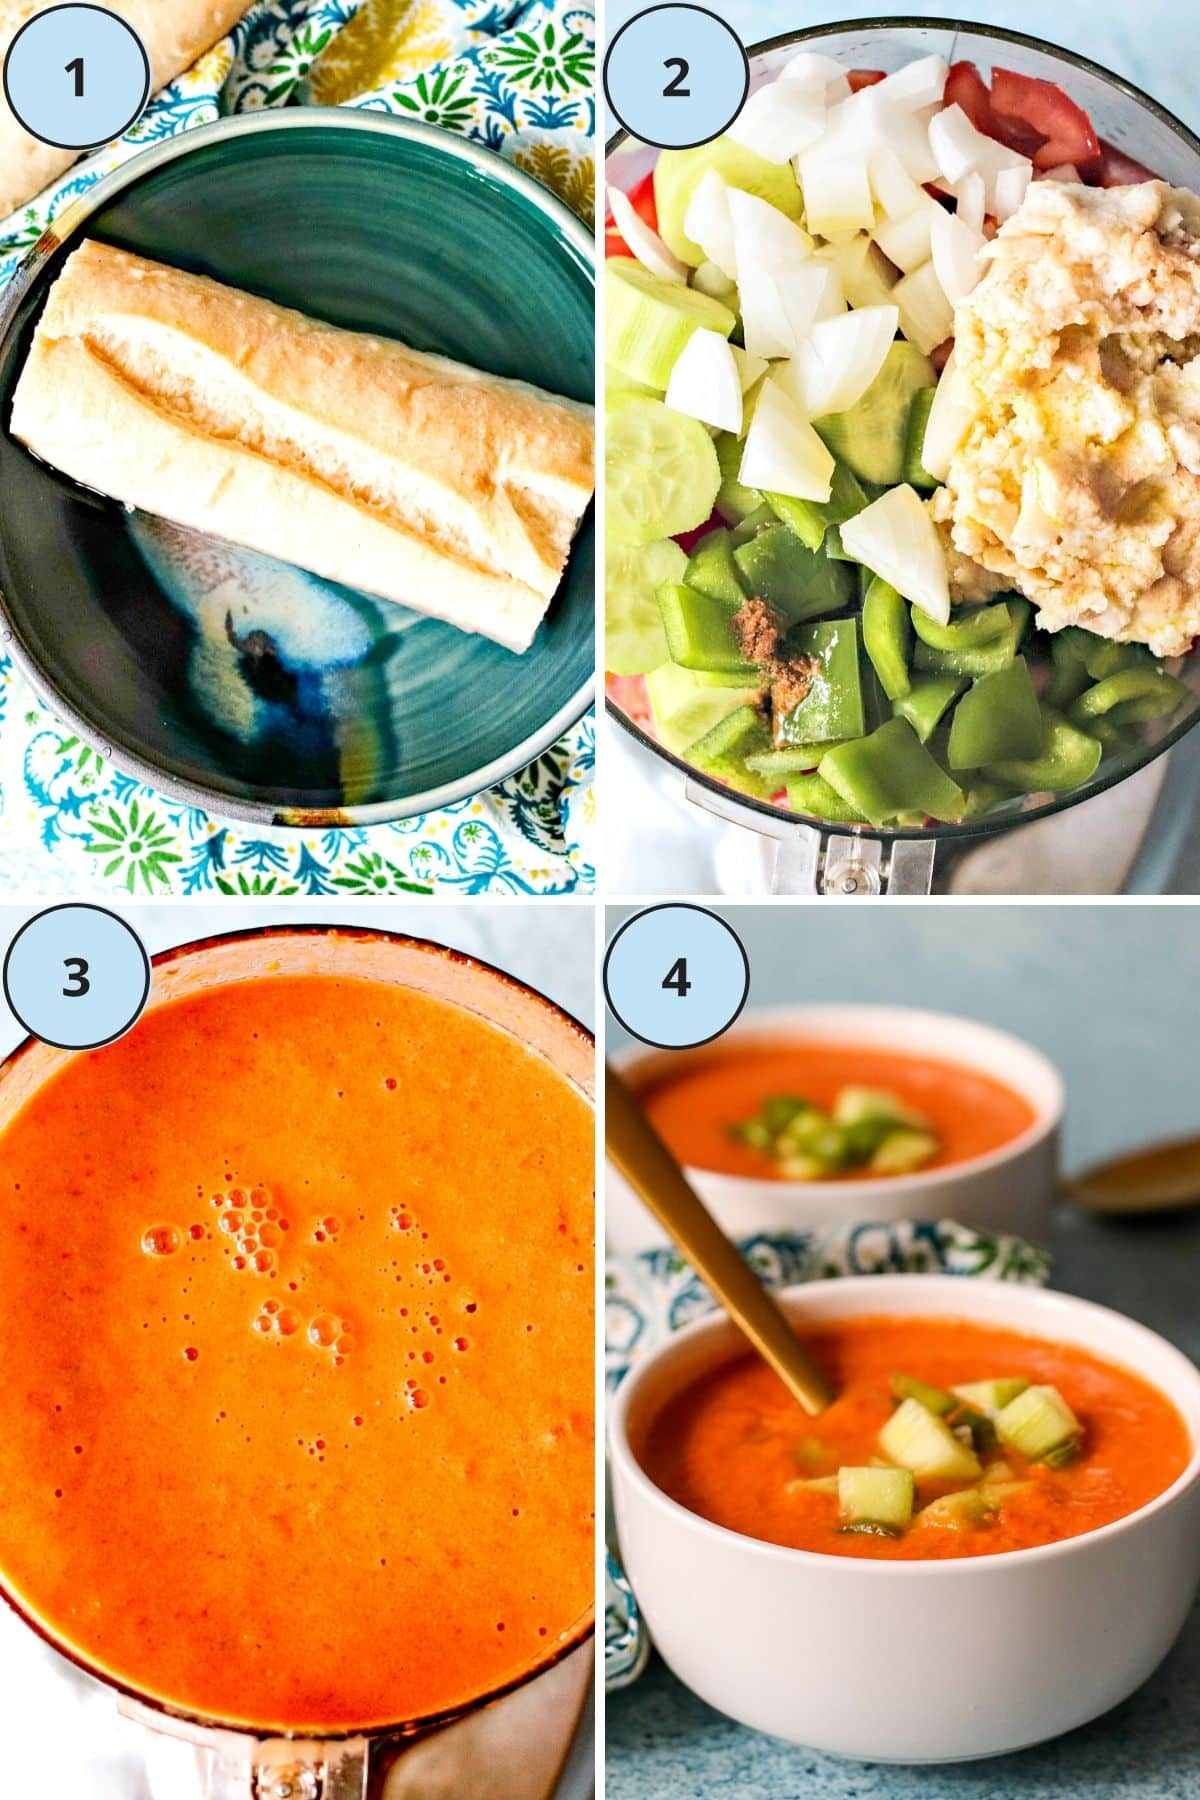 Collage of 4 images showing the steps for making this recipe